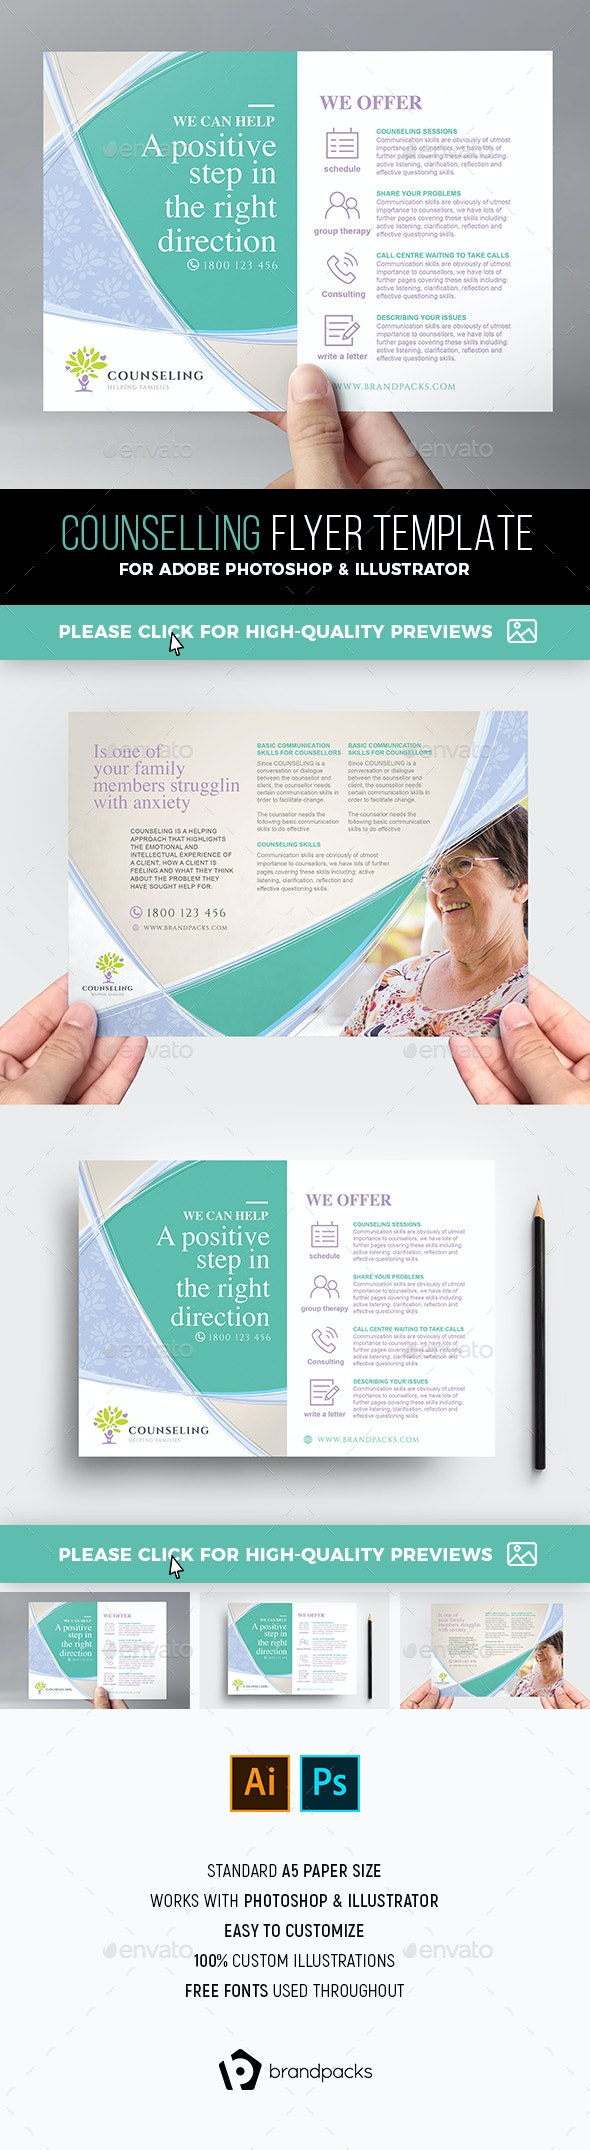 Counselling Service Flyer Template - Corporate Flyers